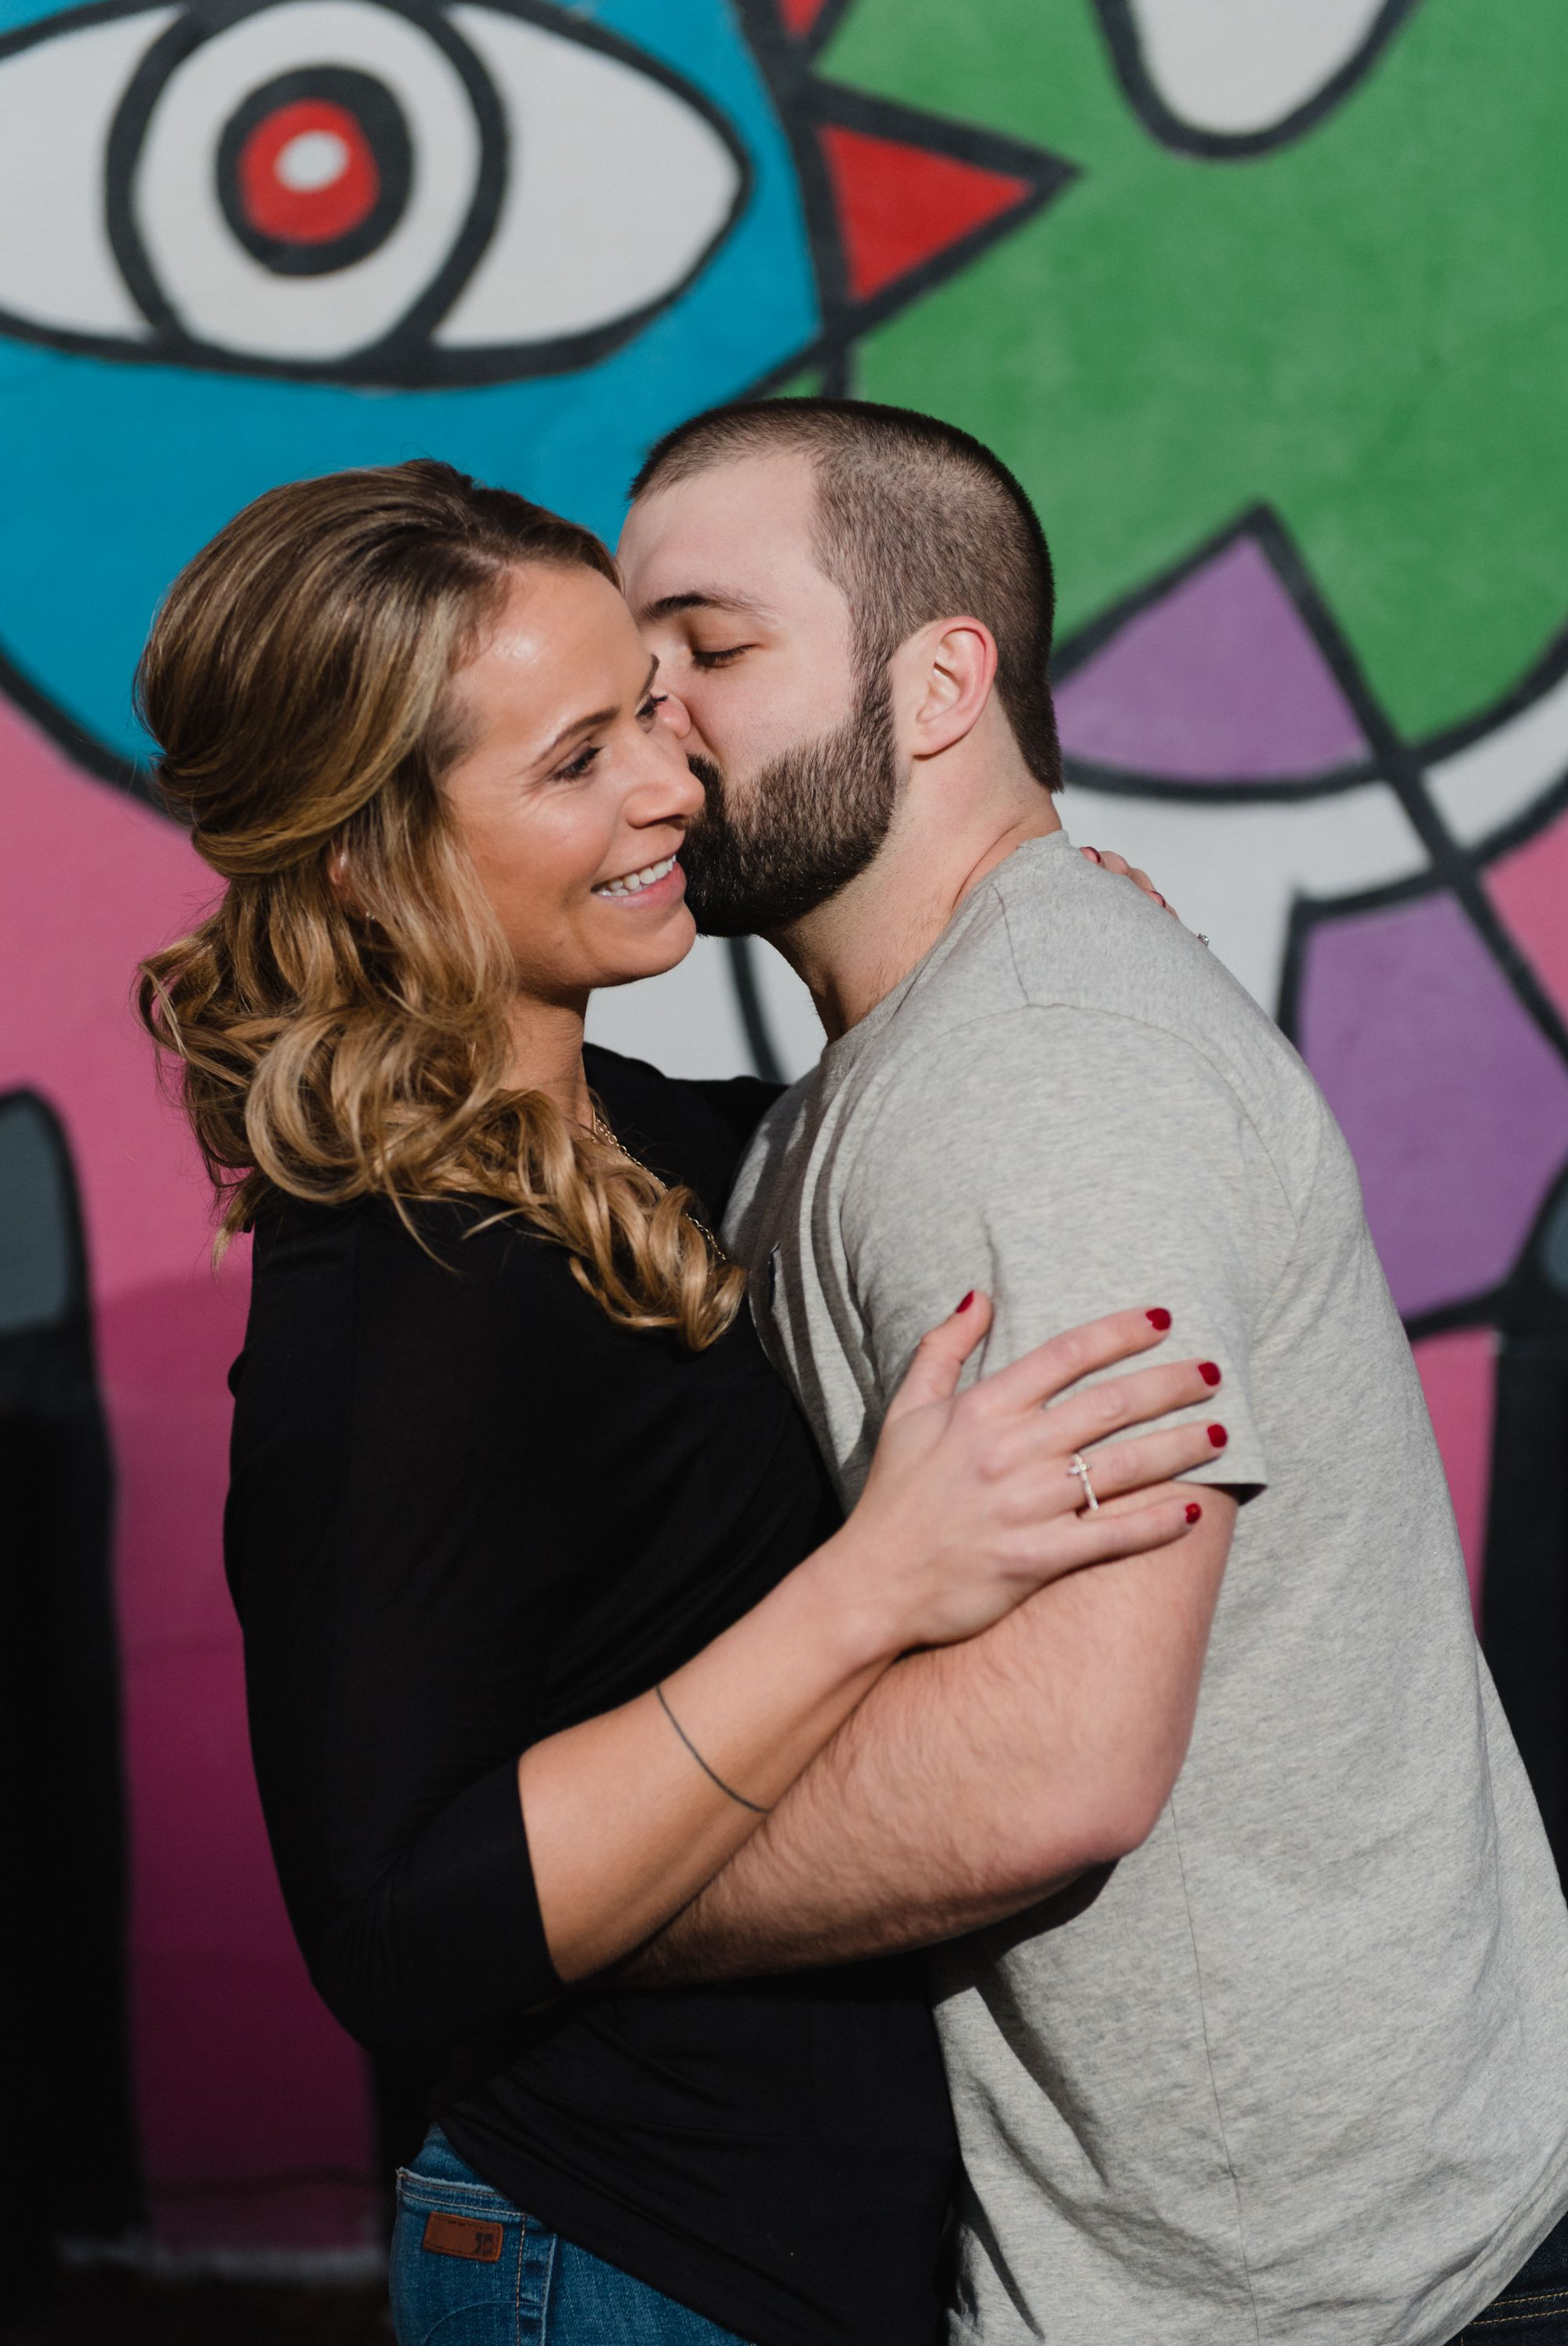 uptown charlotte engagement pictures 11 -